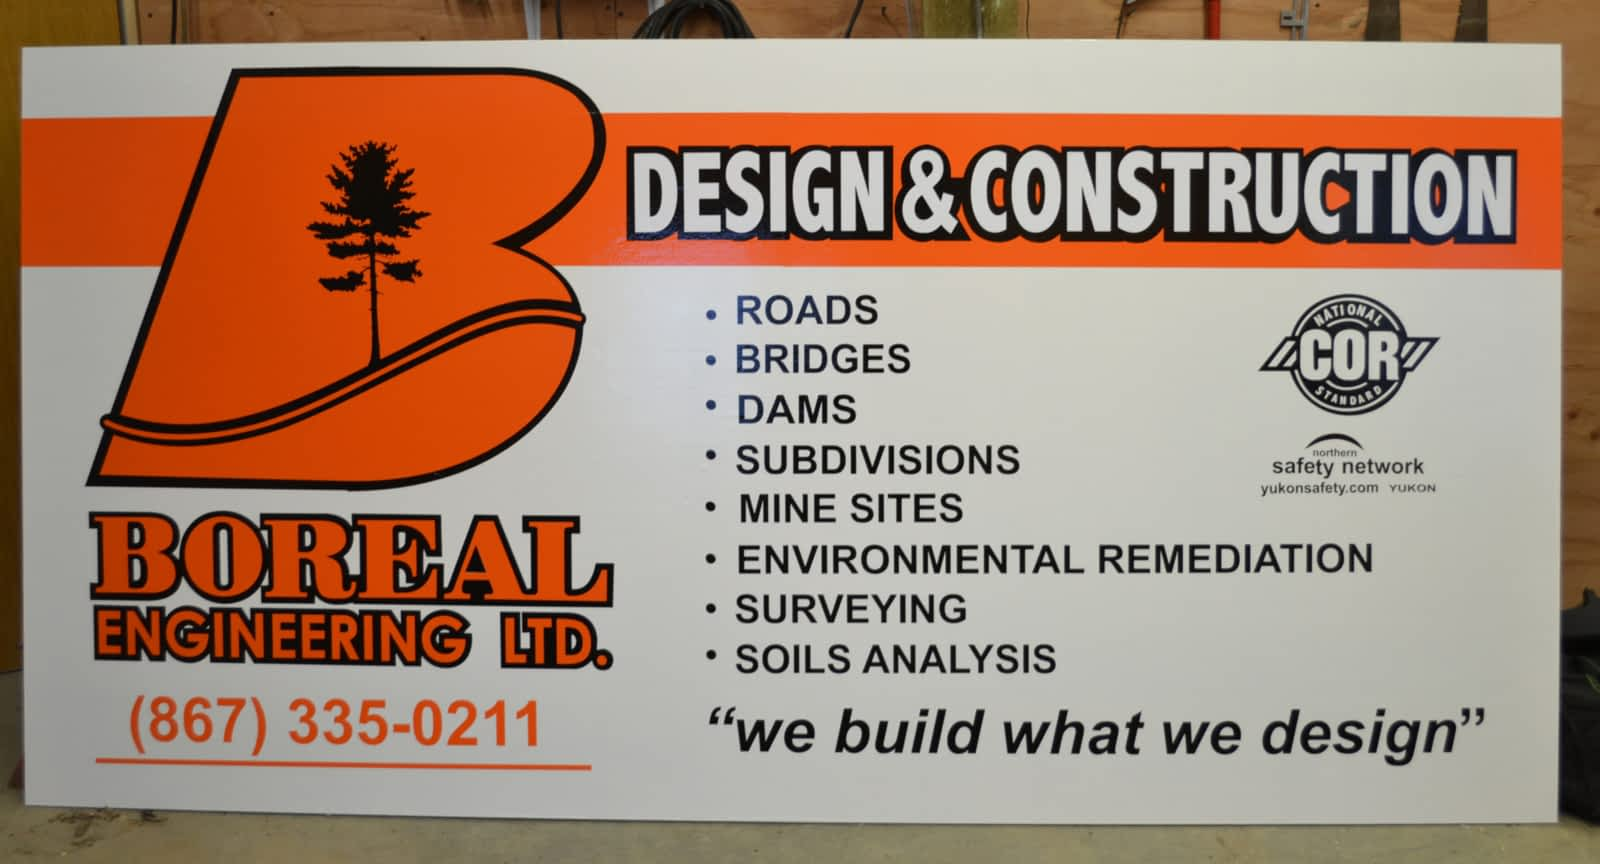 Boreal design & Construction